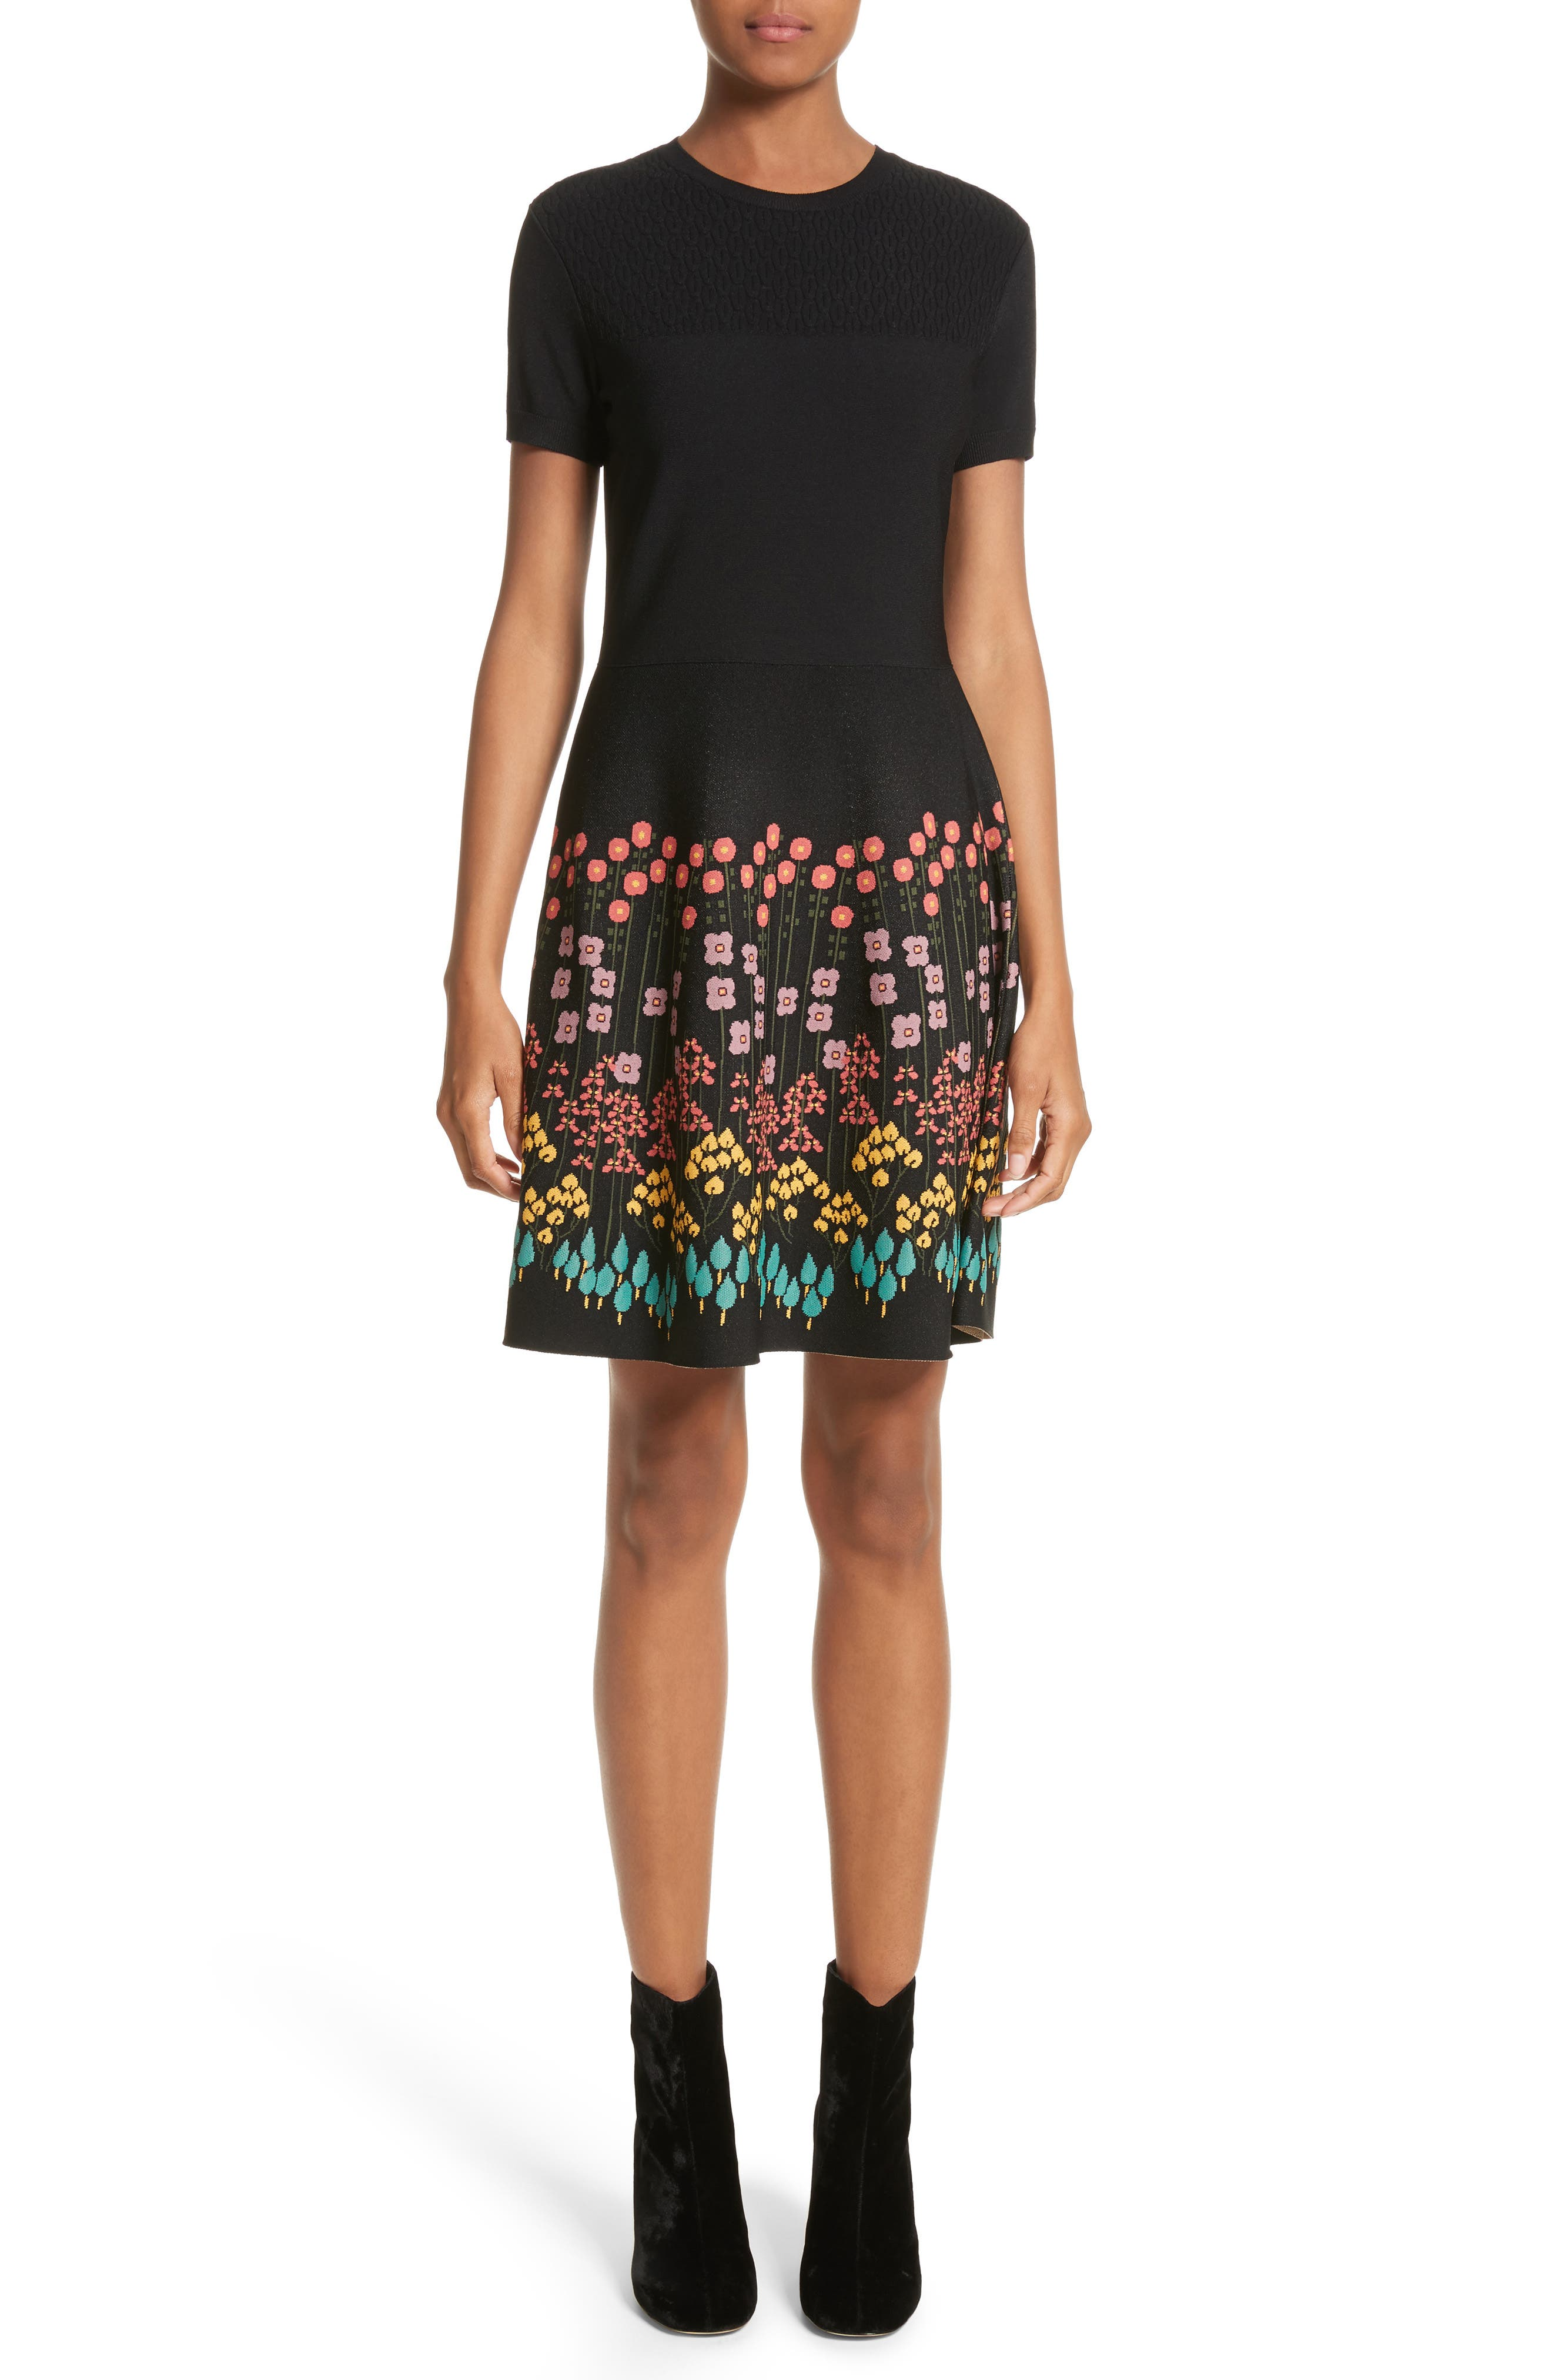 Valentino Floral Jacquard Knit Dress